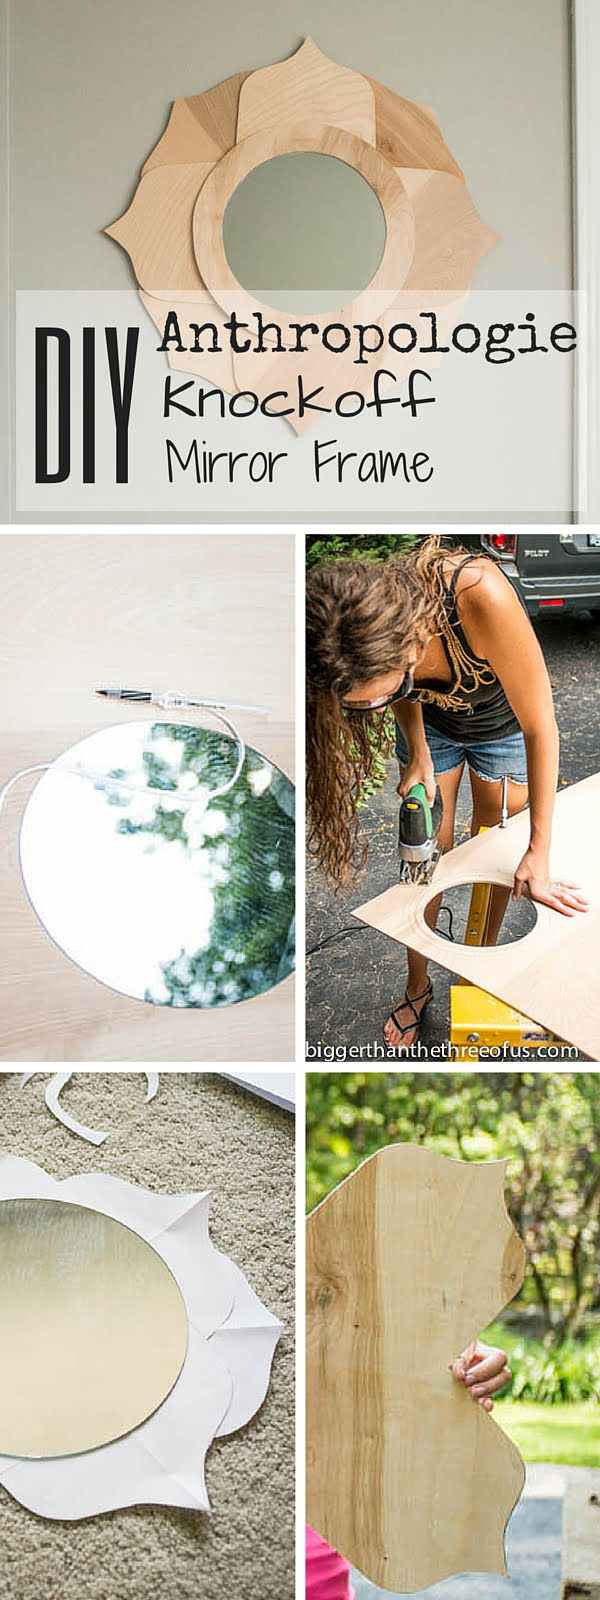 Check out the tutorial: #DIY Anthropologie Knockoff Mirror Frame #crafts #homedecor